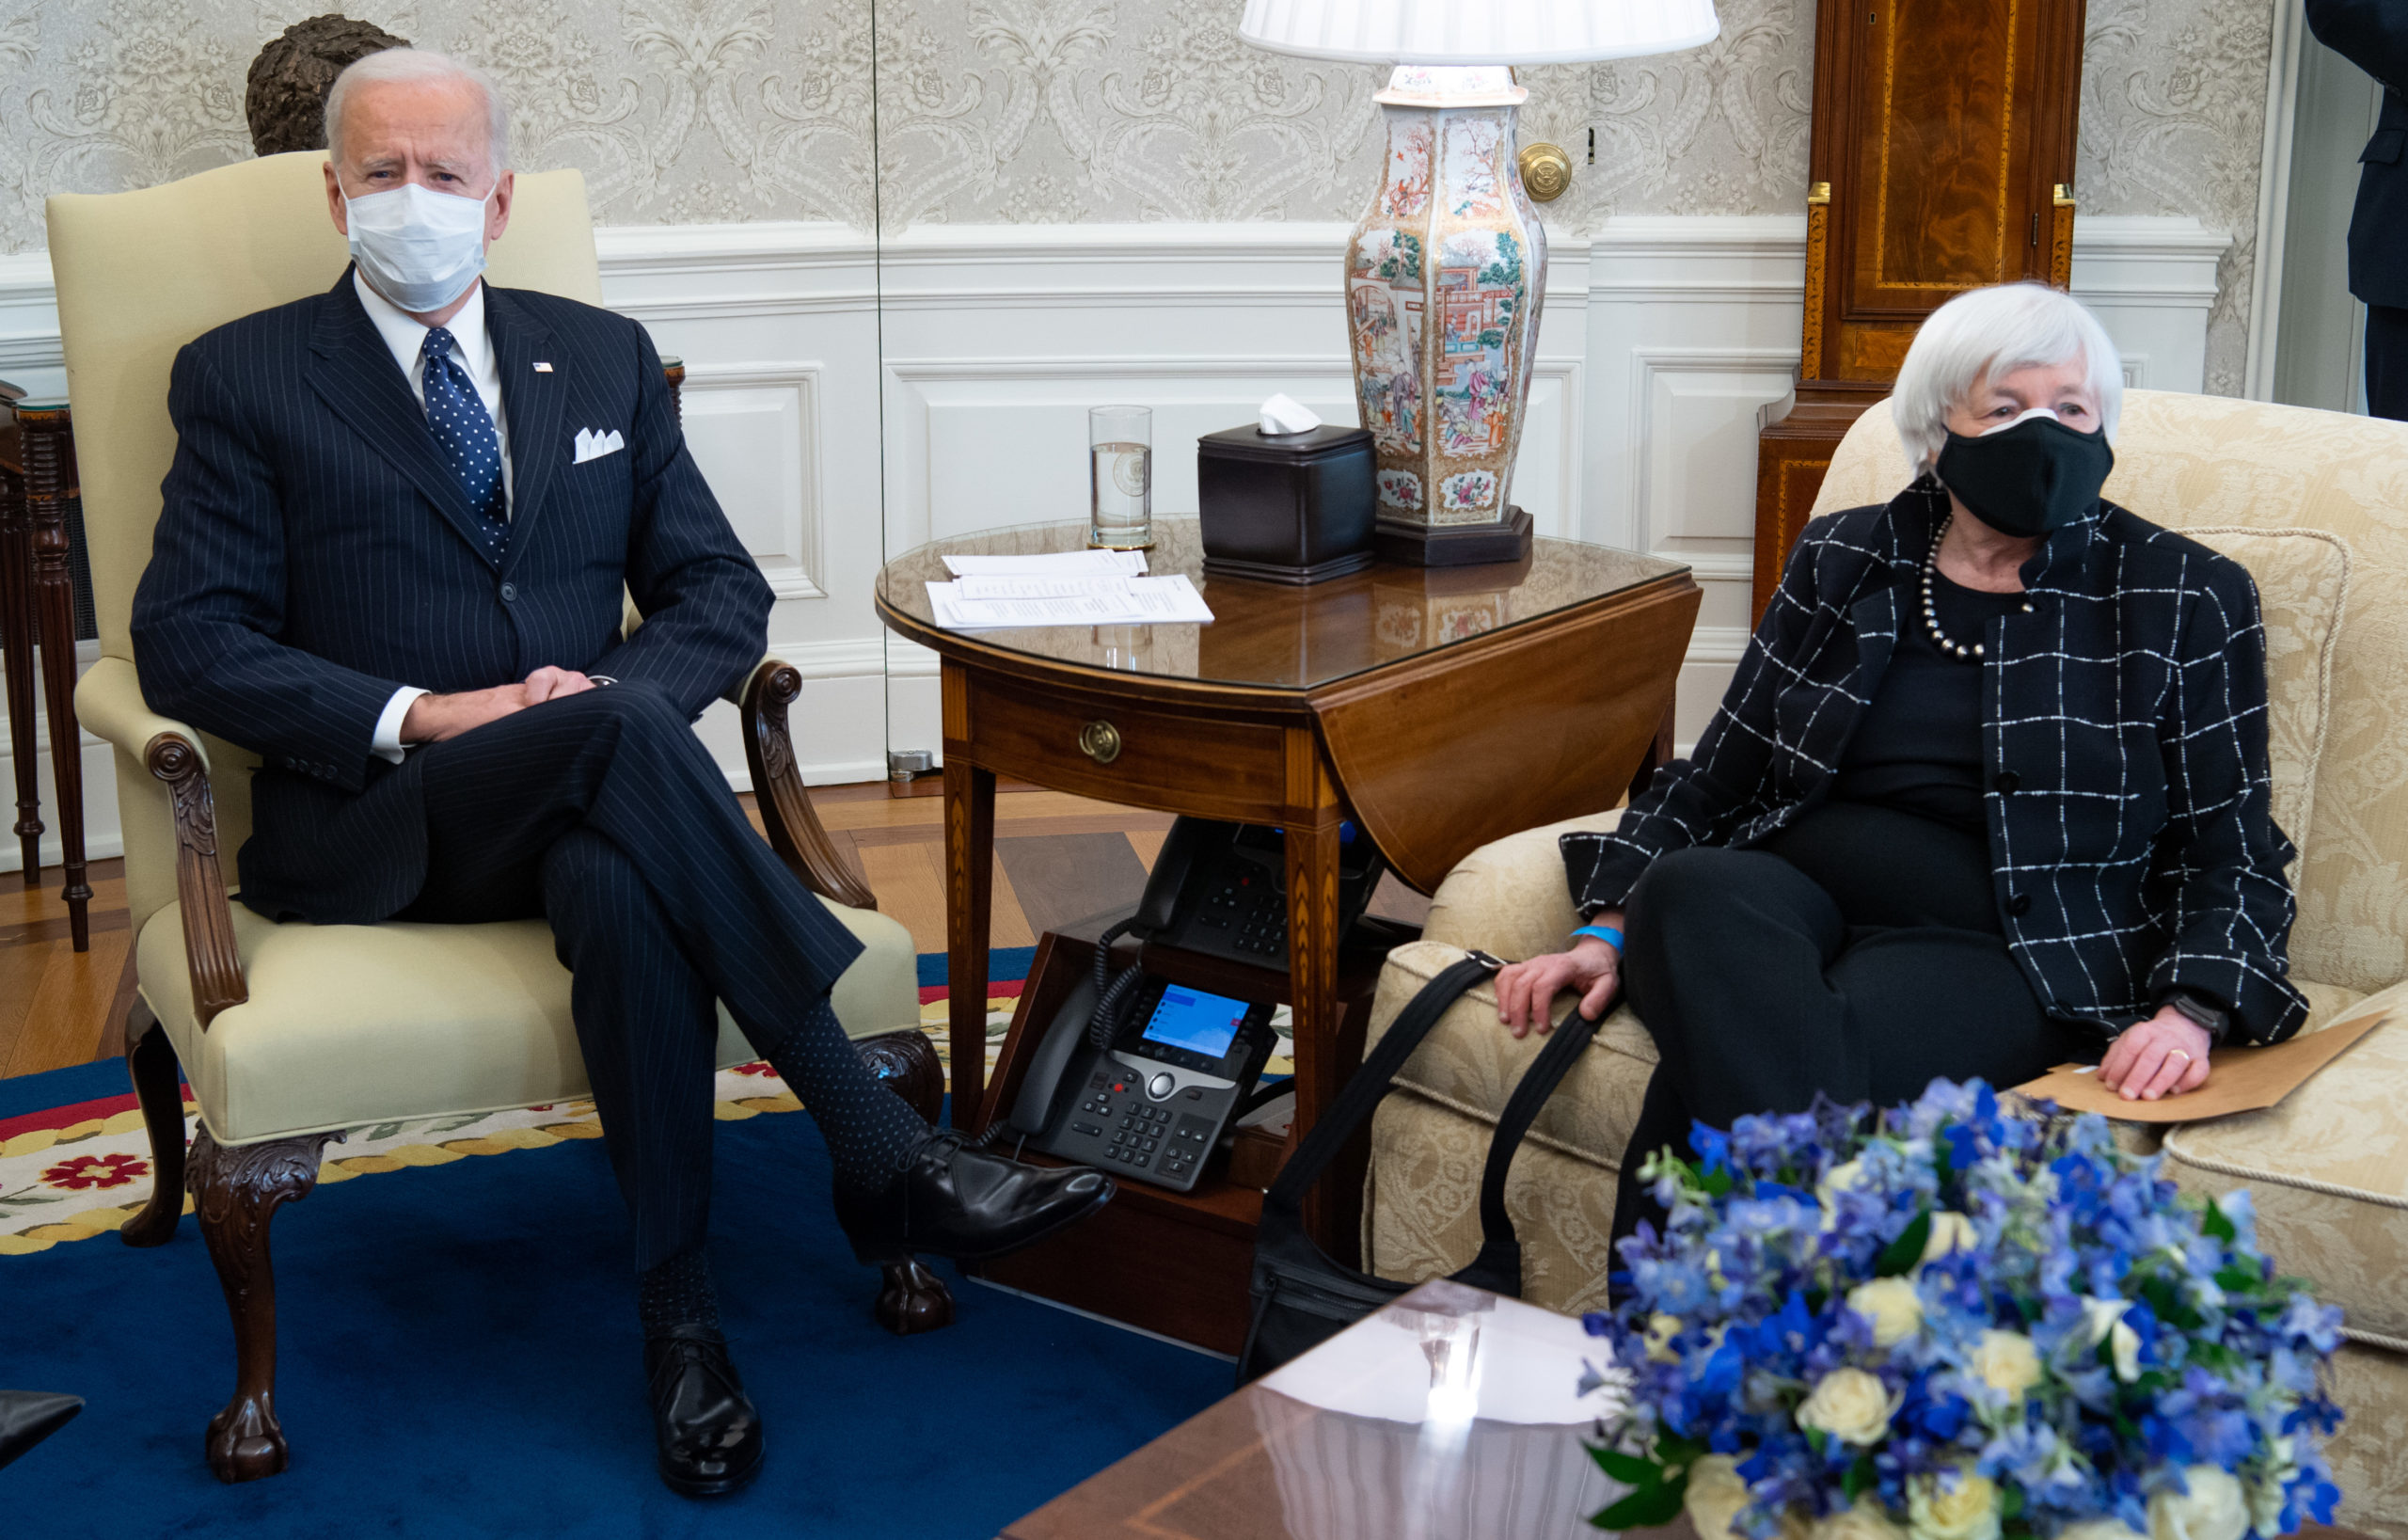 US President Joe Biden sits alongside US Treasury Secretary Janet Yellen (R) as he holds a meeting with business leaders about a Covid relief bill in the Oval Office of the White House in Washington, DC, February 9, 2021. (Photo by SAUL LOEB / AFP) (Photo by SAUL LOEB/AFP via Getty Images)